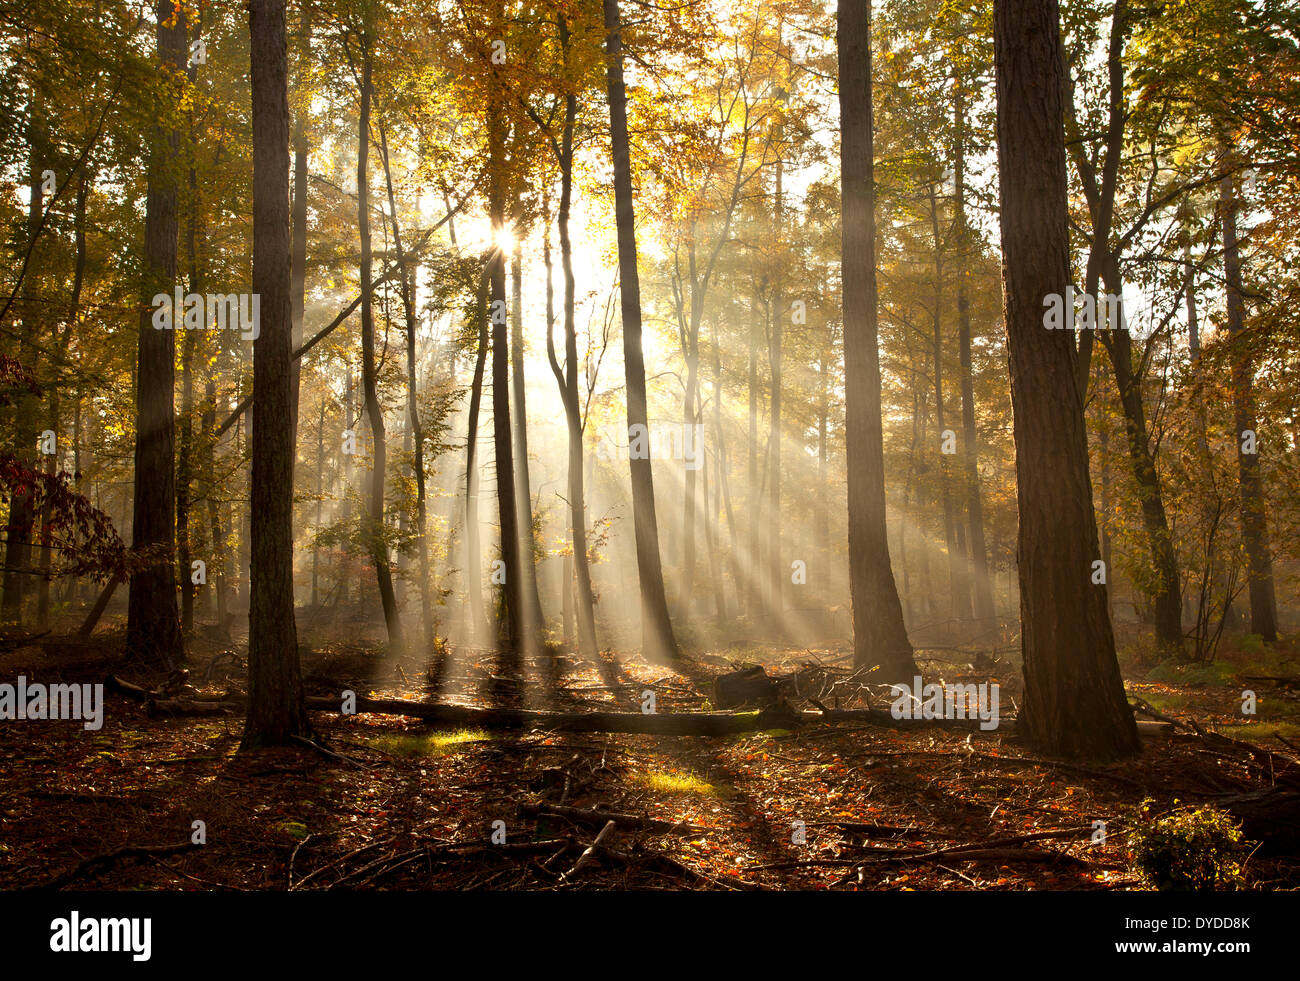 Sunrise at Rishbeth Woods in Thetford Forest. - Stock Image